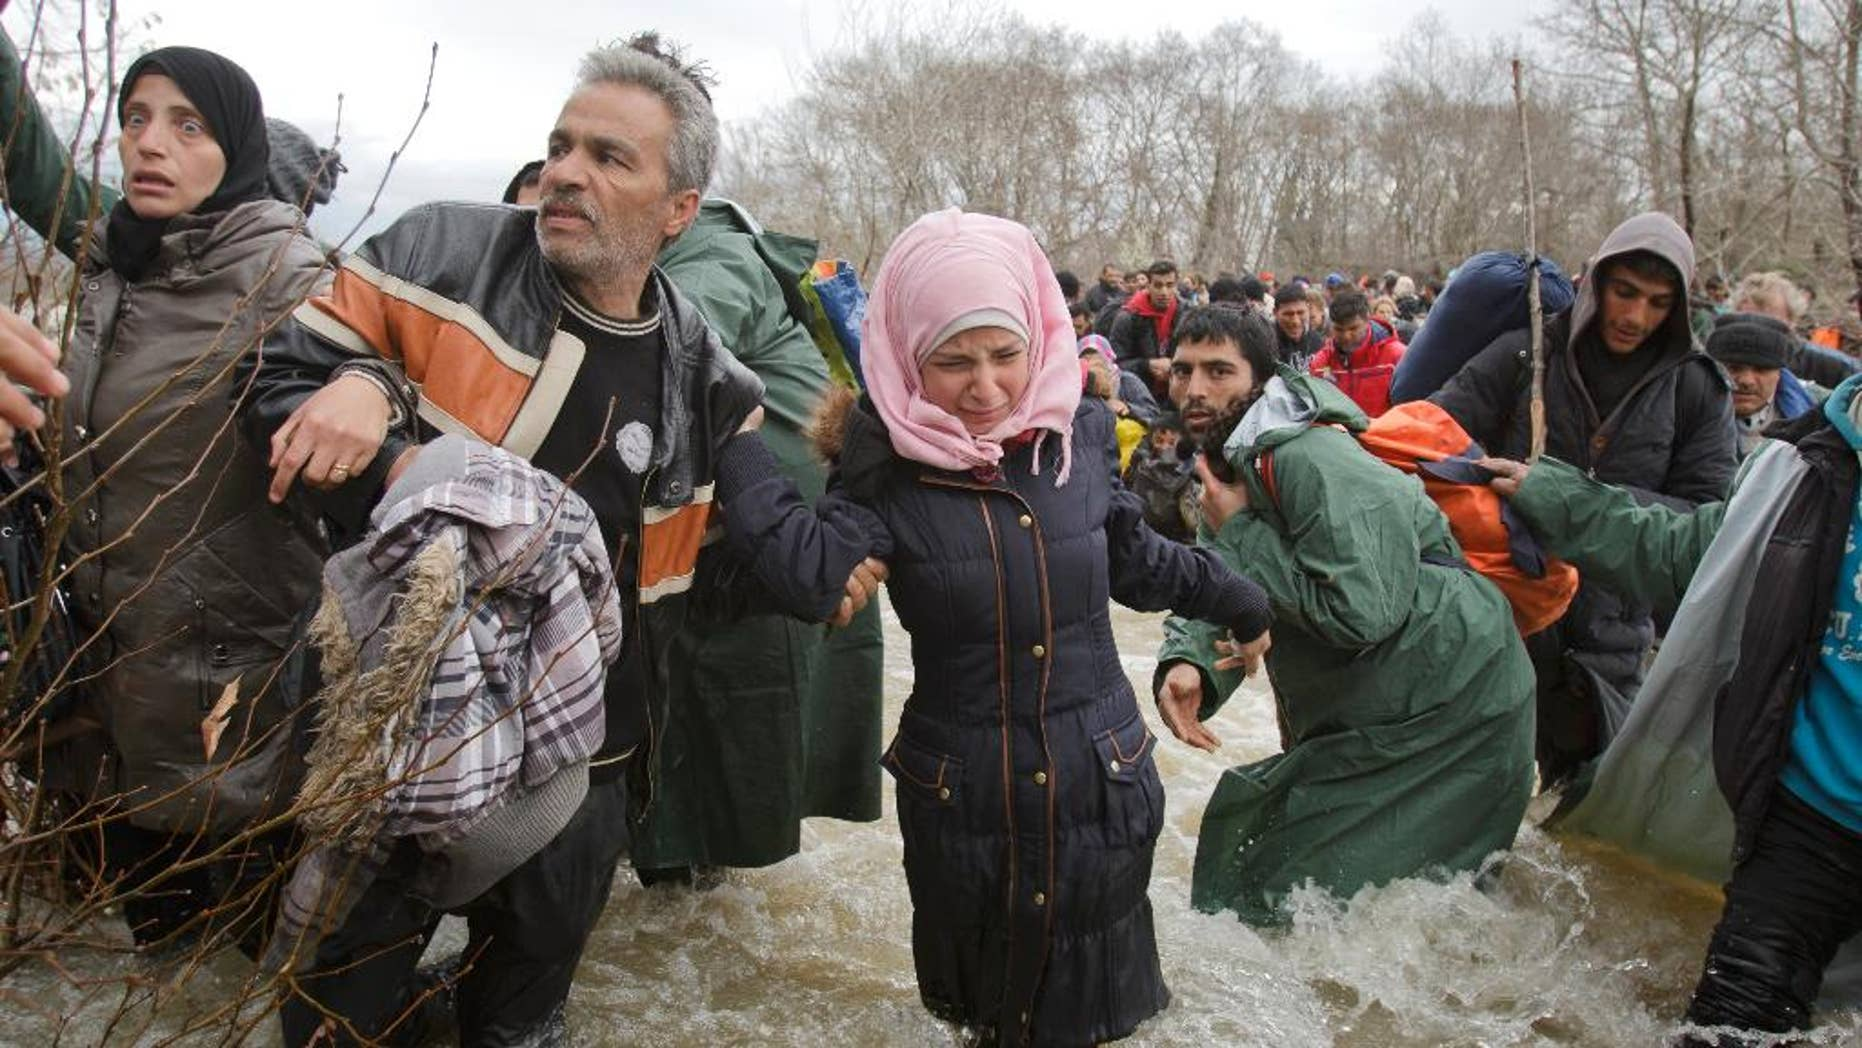 FILE - In this Monday, March 14, 2016 file photo, a woman cries as she crosses the river along with other migrants attempting to reach Macedonia on a route that would bypass the border fence, north of Idomeni, Greece. Eight asylum seekers are taking legal action against Macedonia for expelling them back to Greece after a chaotic mass border crossing earlier this year. The migrant advocacy group ProAsyl said it helped the group file a complaint Monday, Sept. 12 with the Council of Europe's Court of Human Rights. (AP Photo/Vadim Ghirda, file)